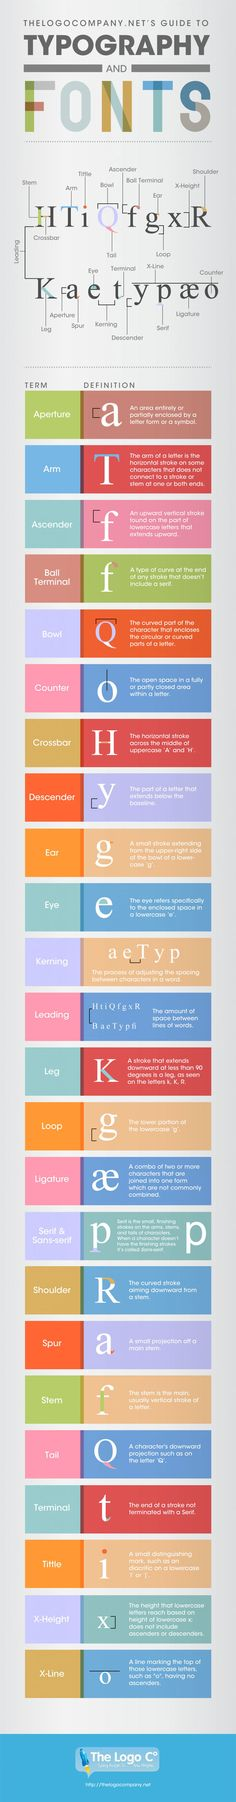 Guide to Typography & Fonts - Infographic